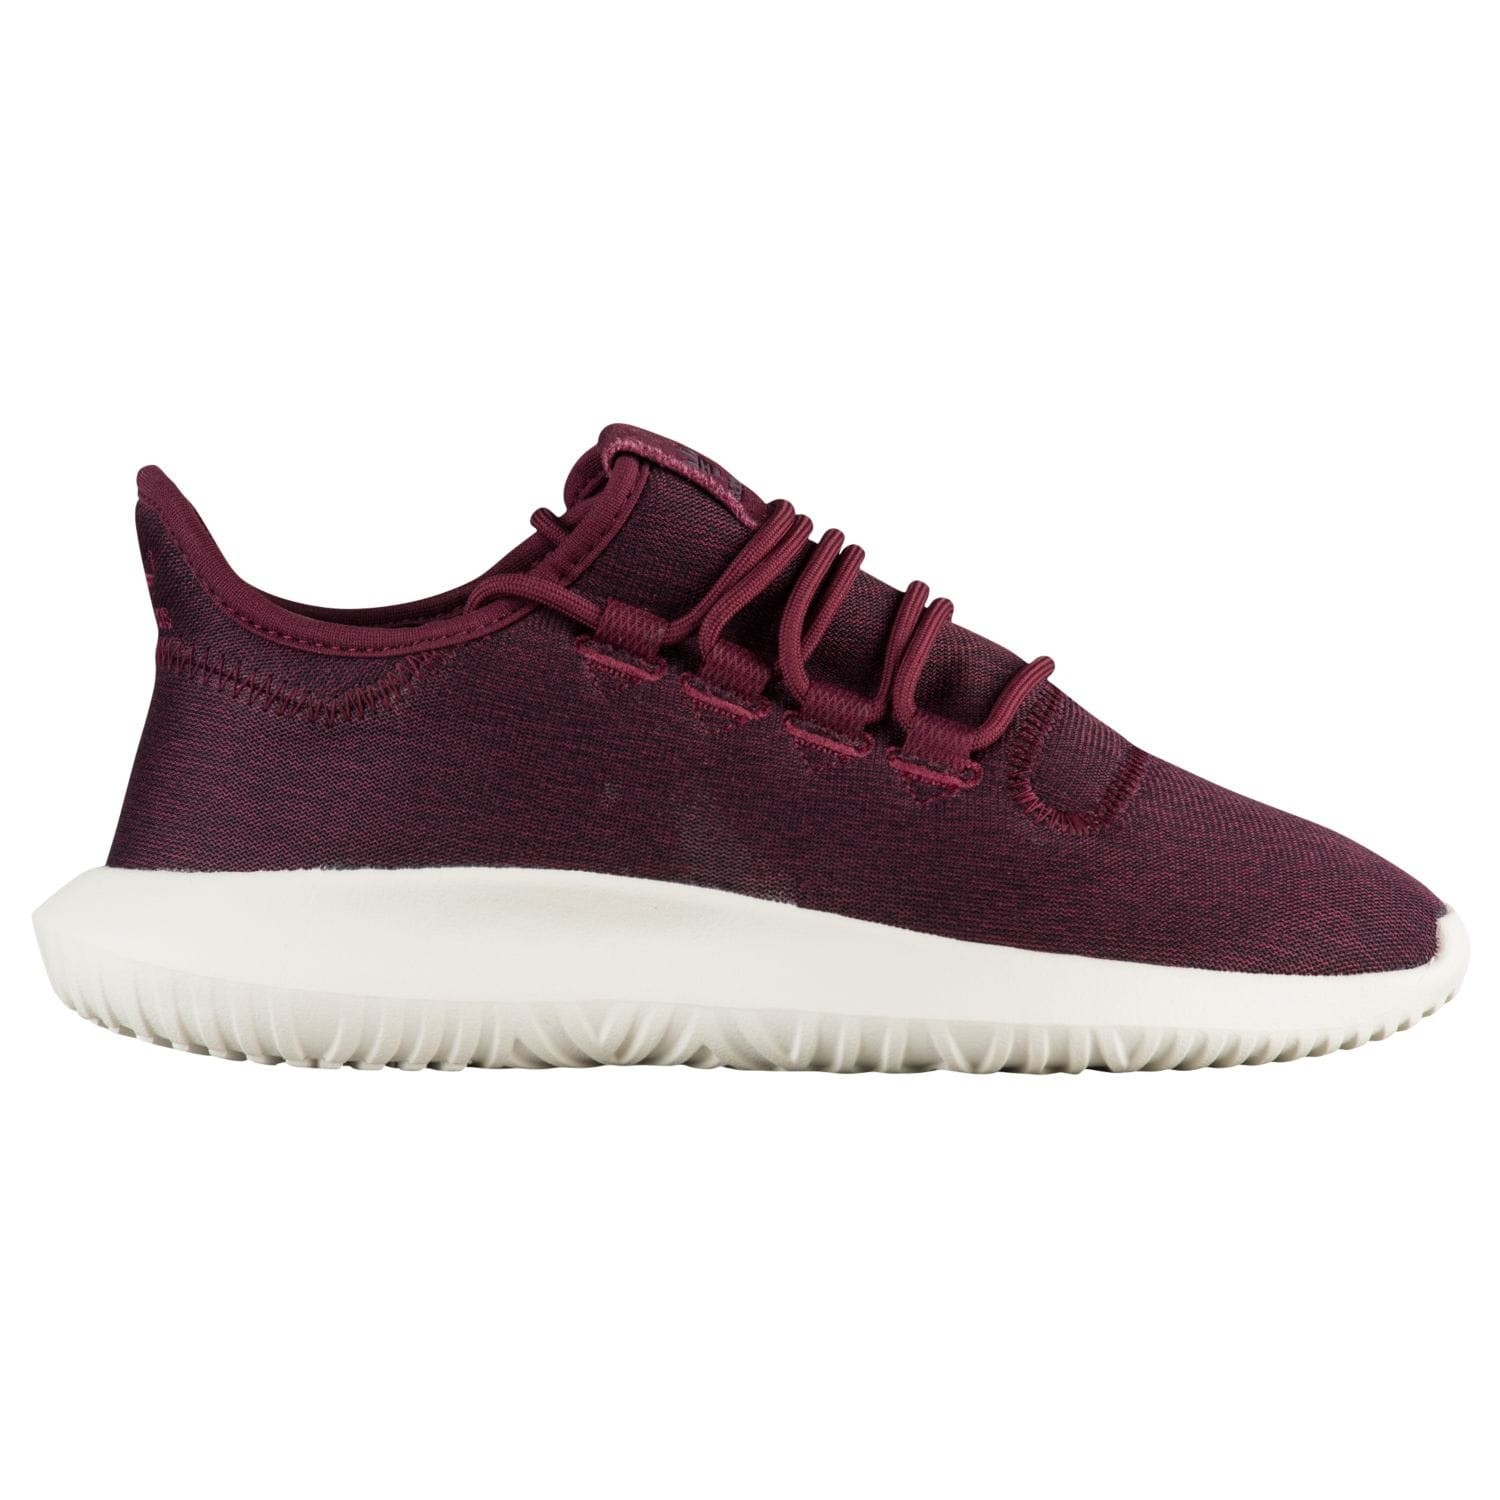 adidas Originals Tubular Shadow Skor CQ2461 - Dam